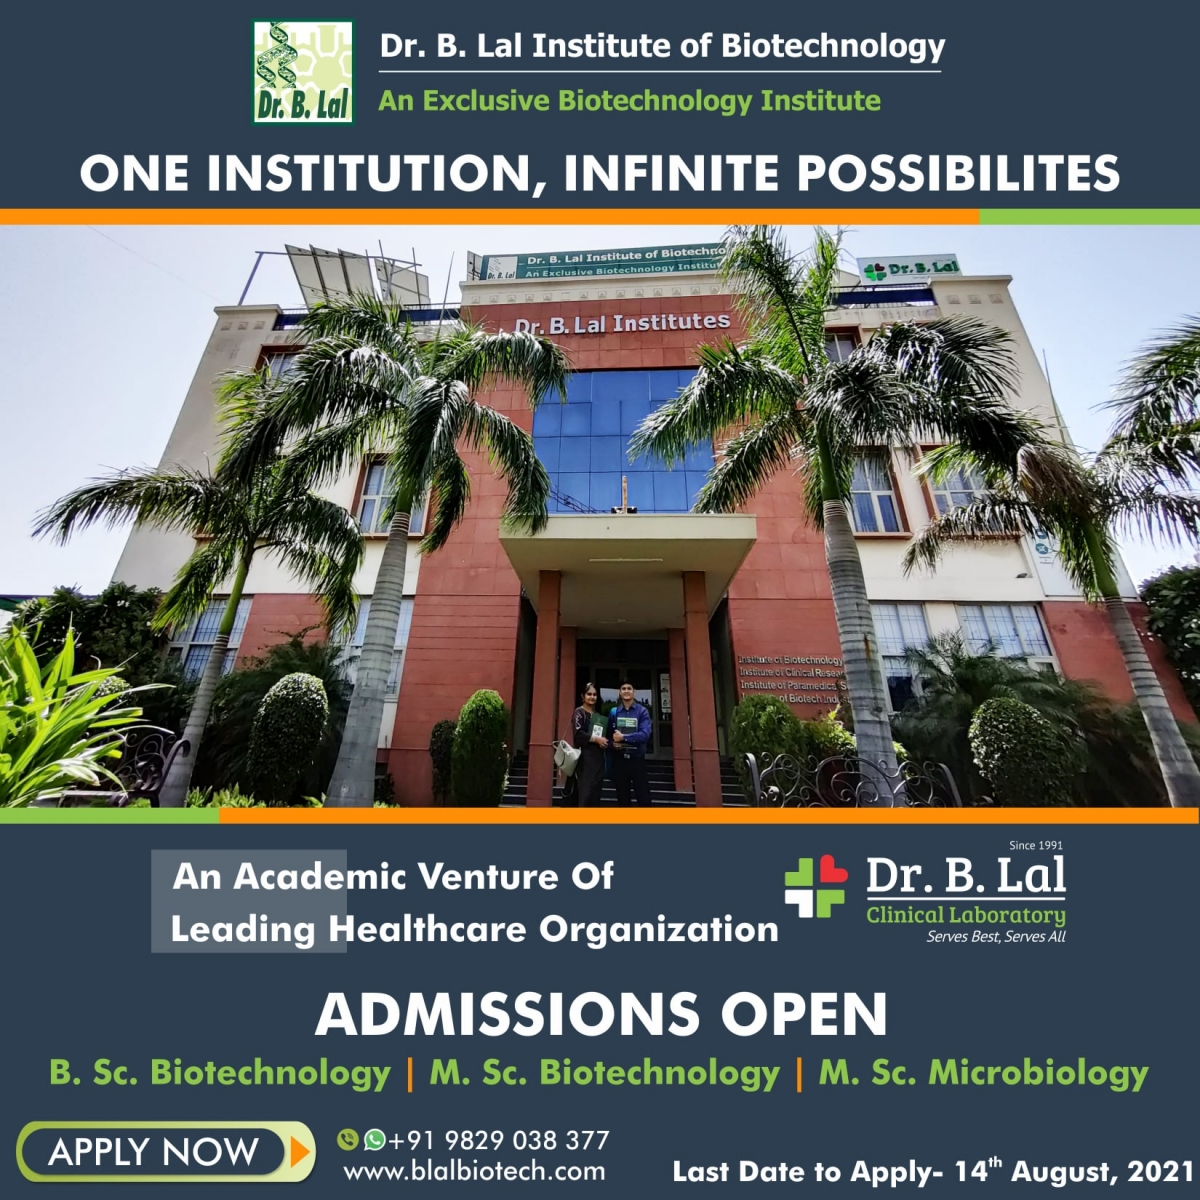 An exclusive Biotechnology Institute in Rajasthan